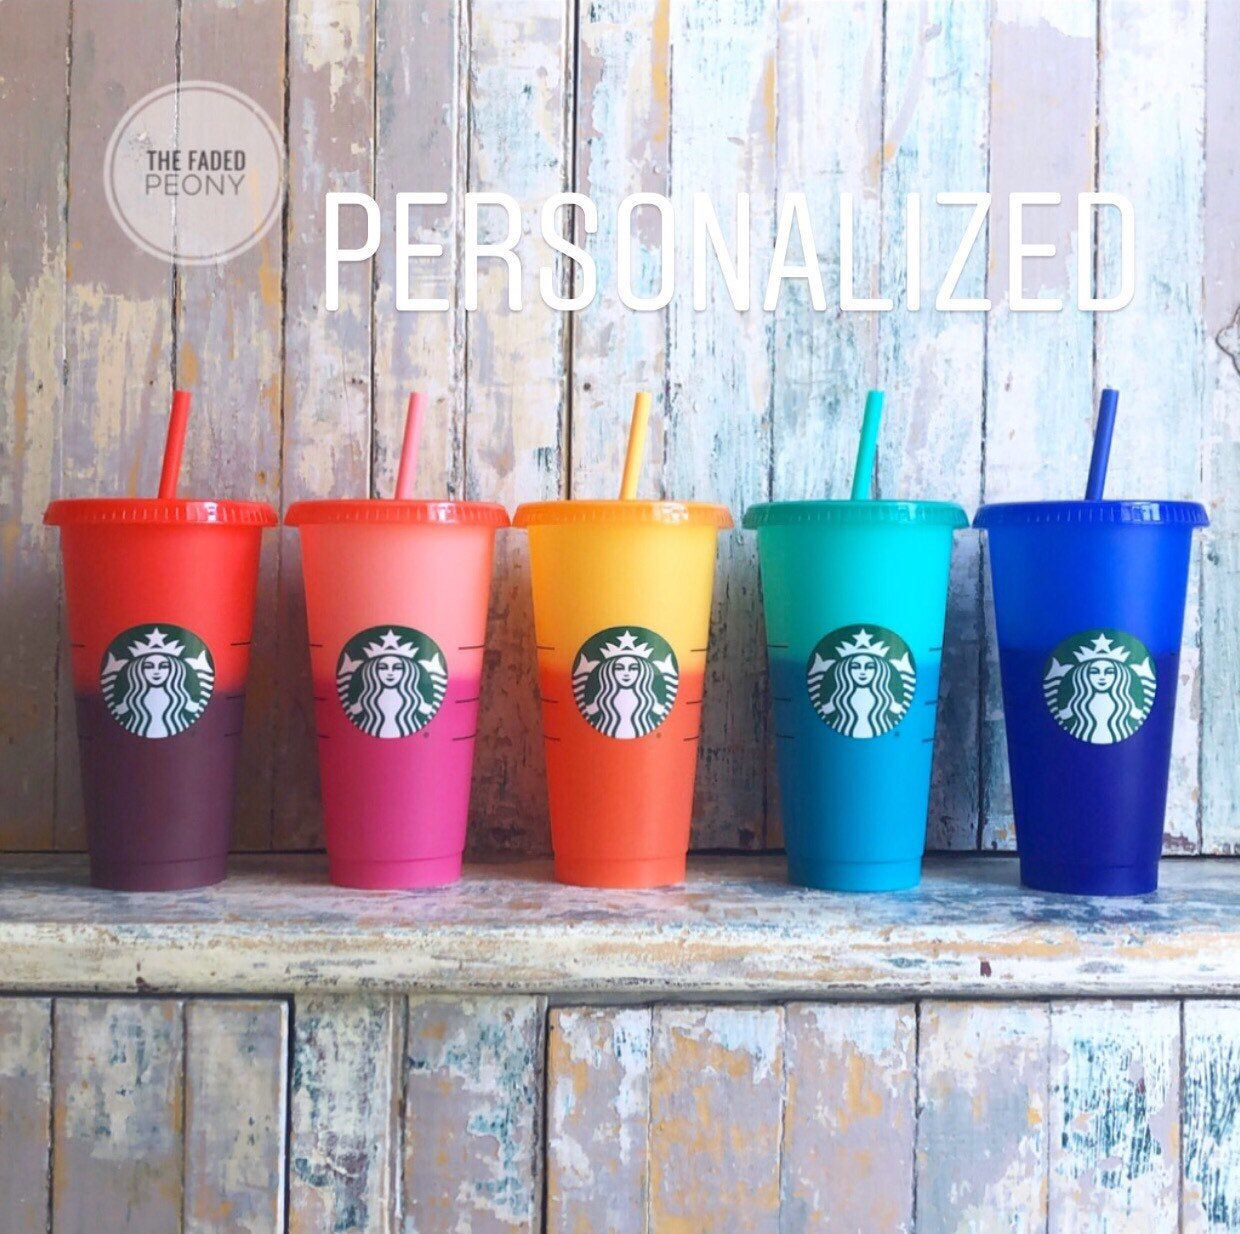 Starbucks Color Changing Cup, Starbucks Tumbler, Starbucks Cup, Color Changing Cup, Personalized Starbucks Cup, Confetti Cup